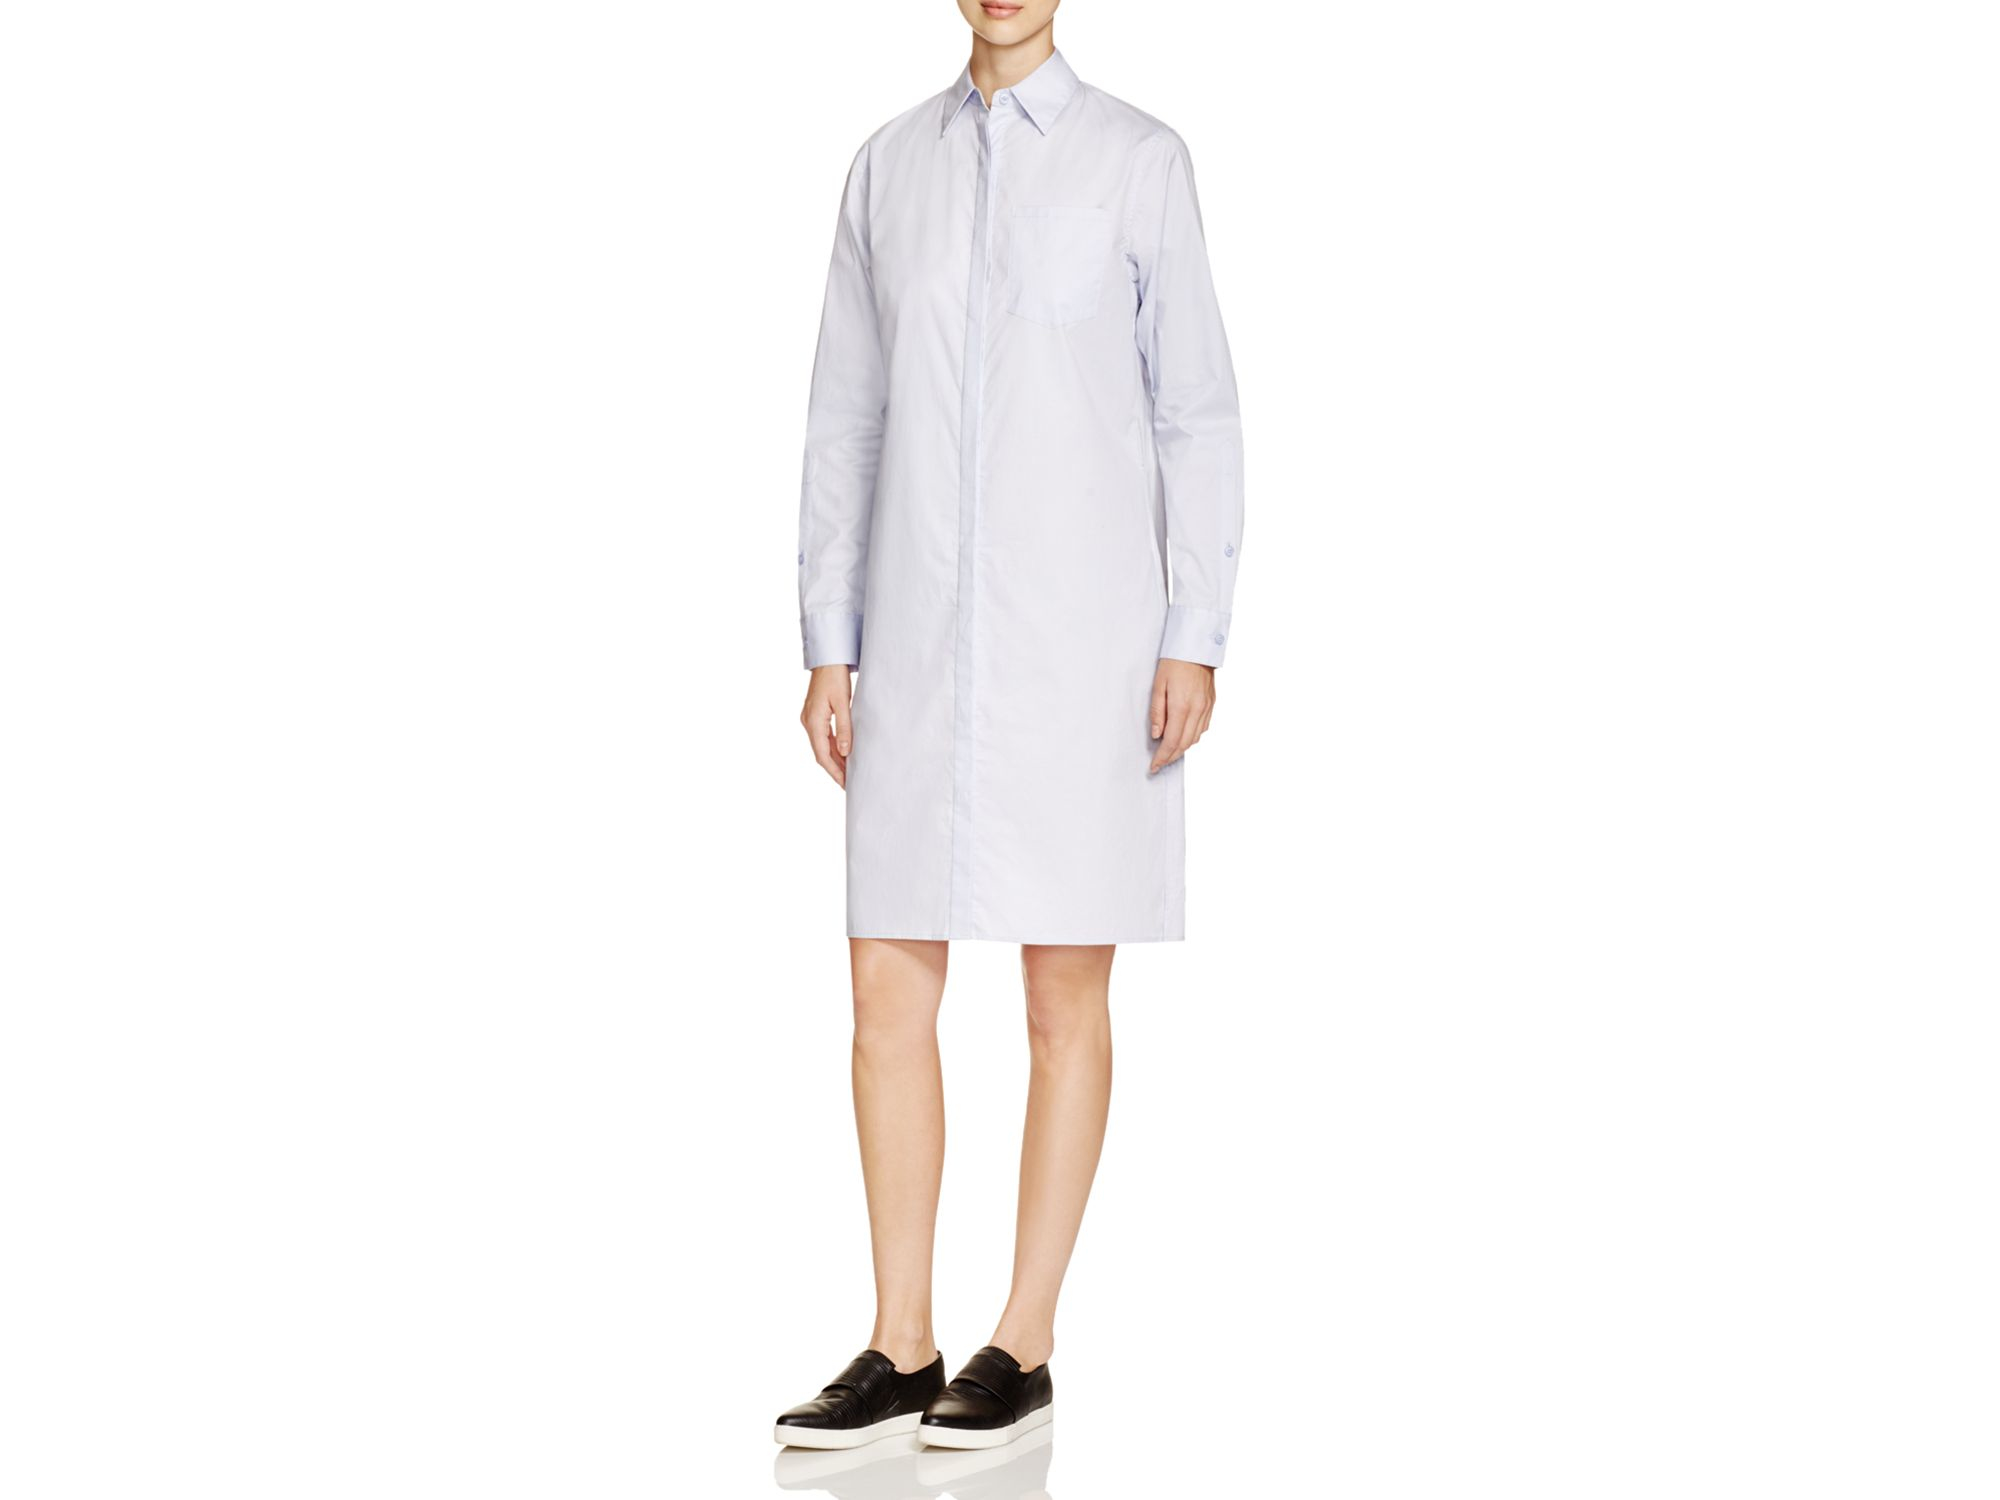 Lyst dkny stretch cotton shirt dress in white for How to stretch a dress shirt